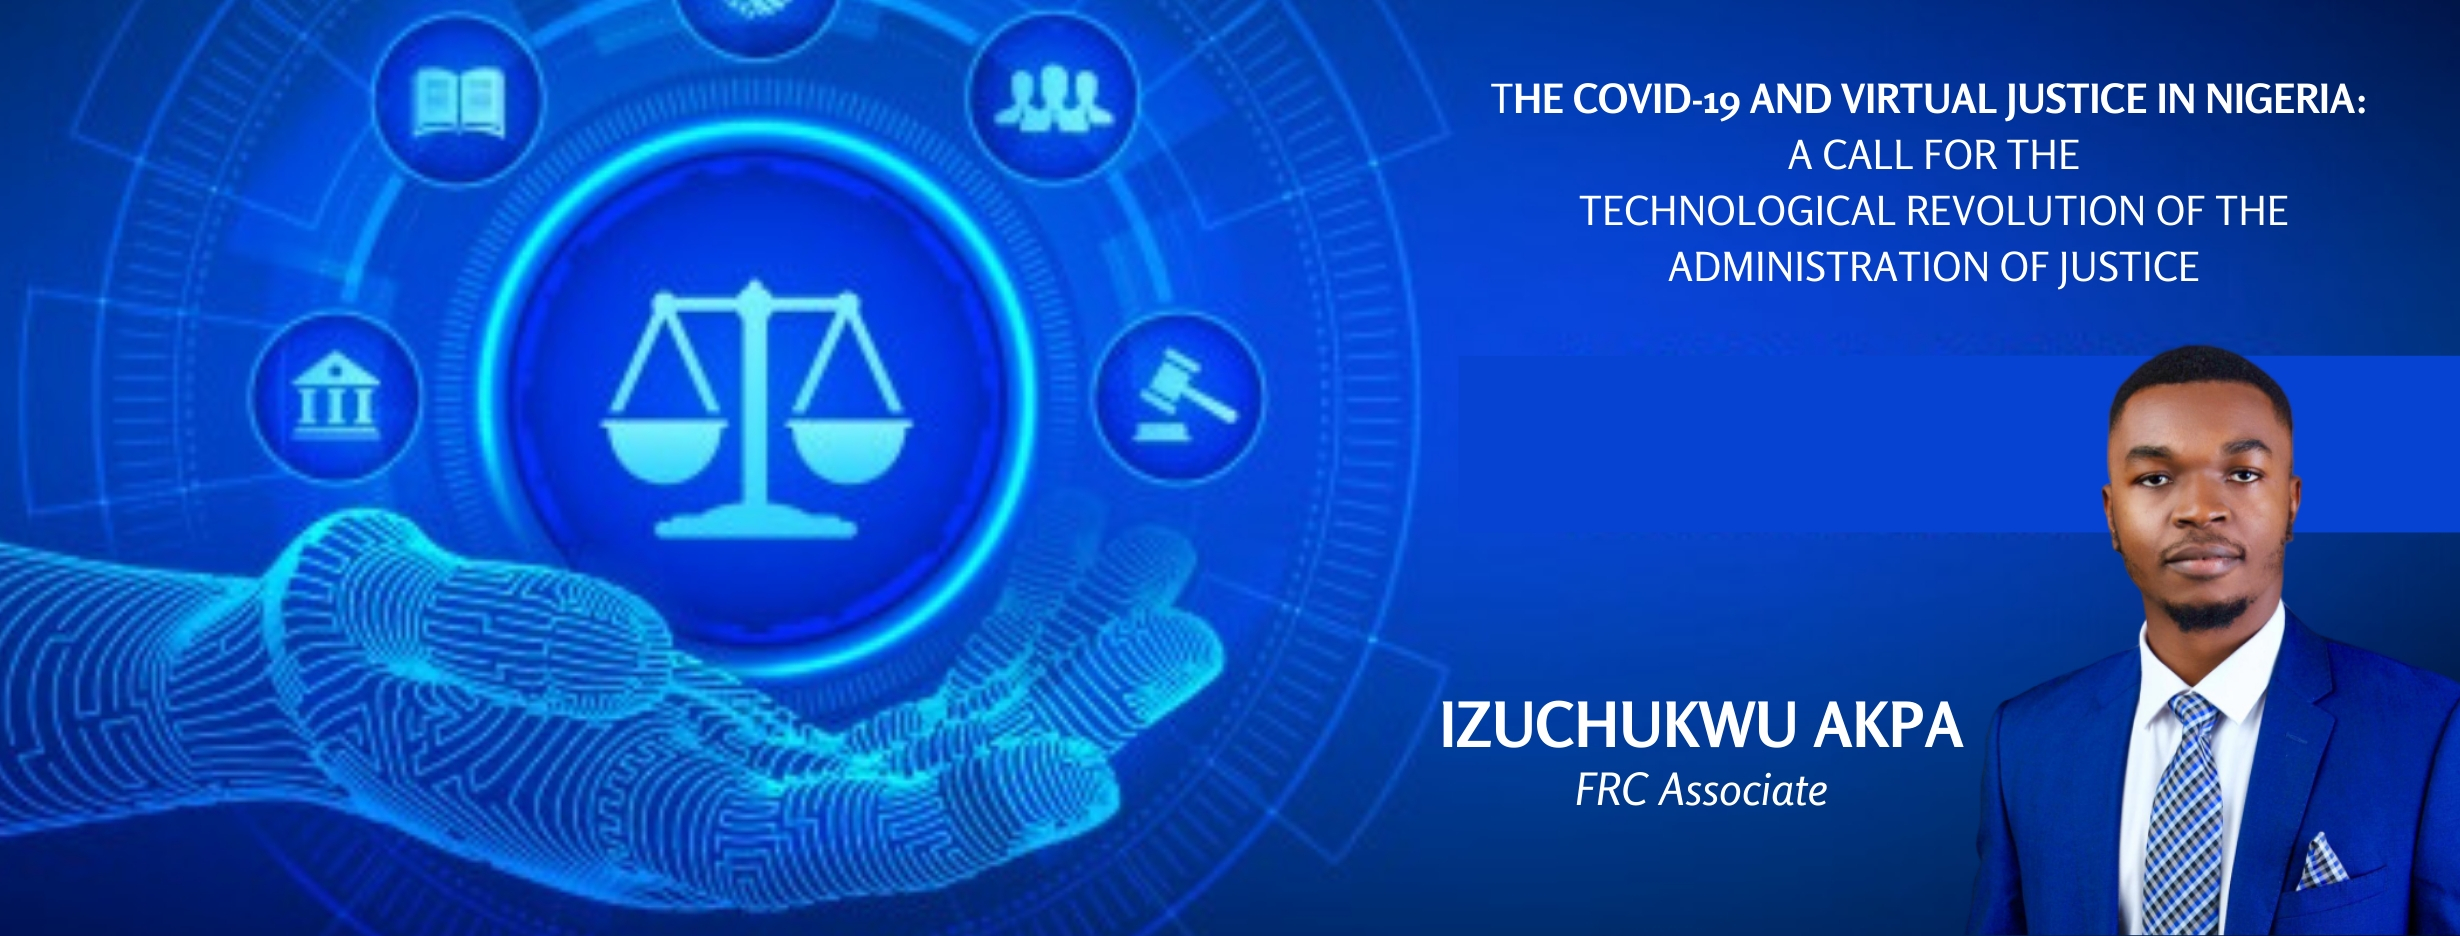 THE COVID-19 AND VIRTUAL JUSTICE IN NIGERIA – A CALL FOR THE TECHNOLOGICAL REVOLUTION OF THE ADMINISTRATION OF JUSTICE